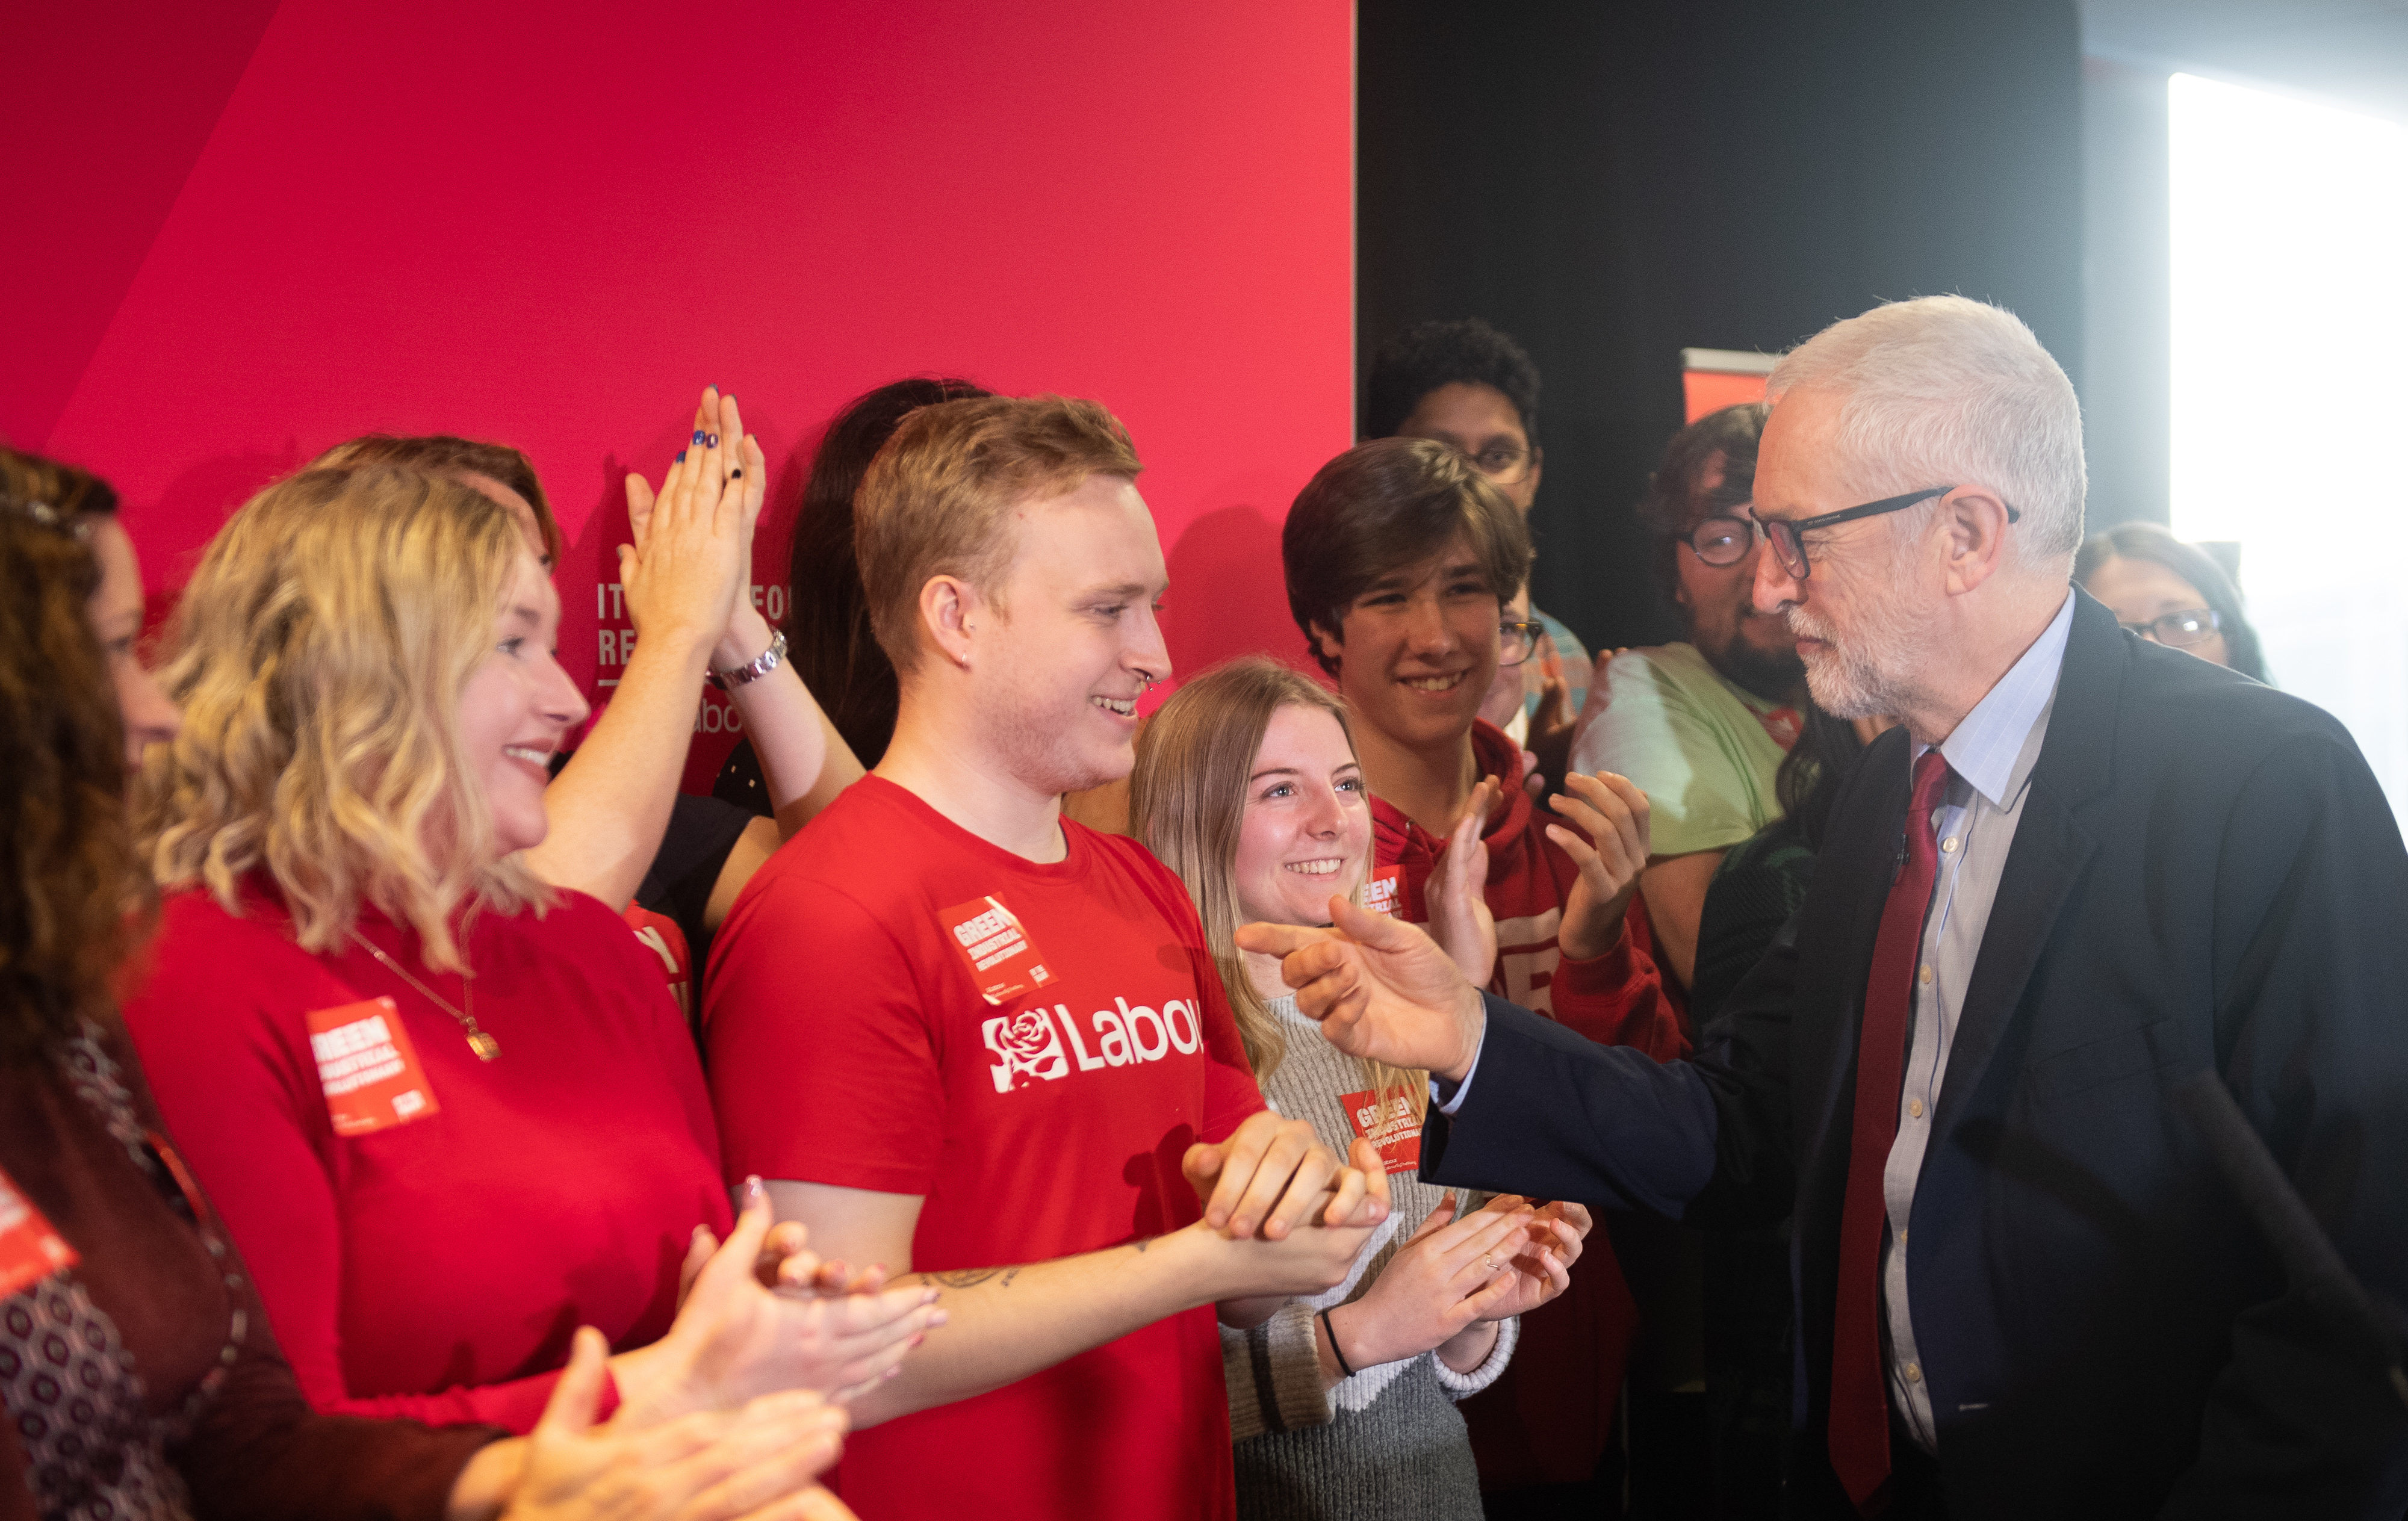 Labour Party leader Jeremy Corbyn makes a speech setting out the party's environment policies at Southampton Football Club in Hampshire, while on the General Election campaign trail.